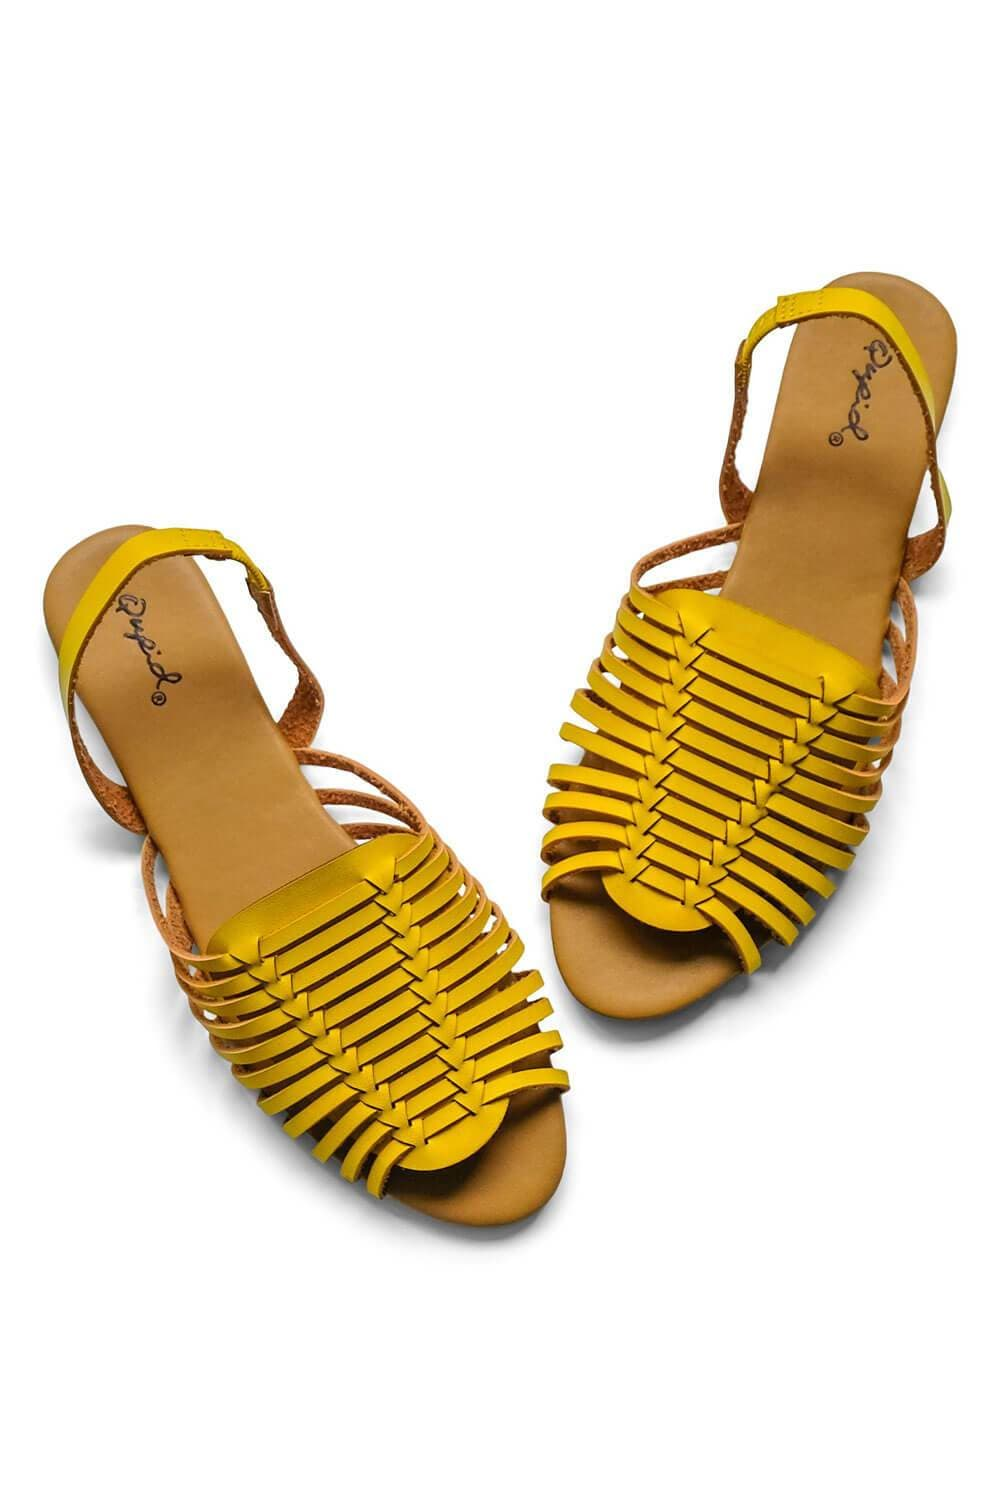 Tucson Sandal Yellow - MILK MONEY